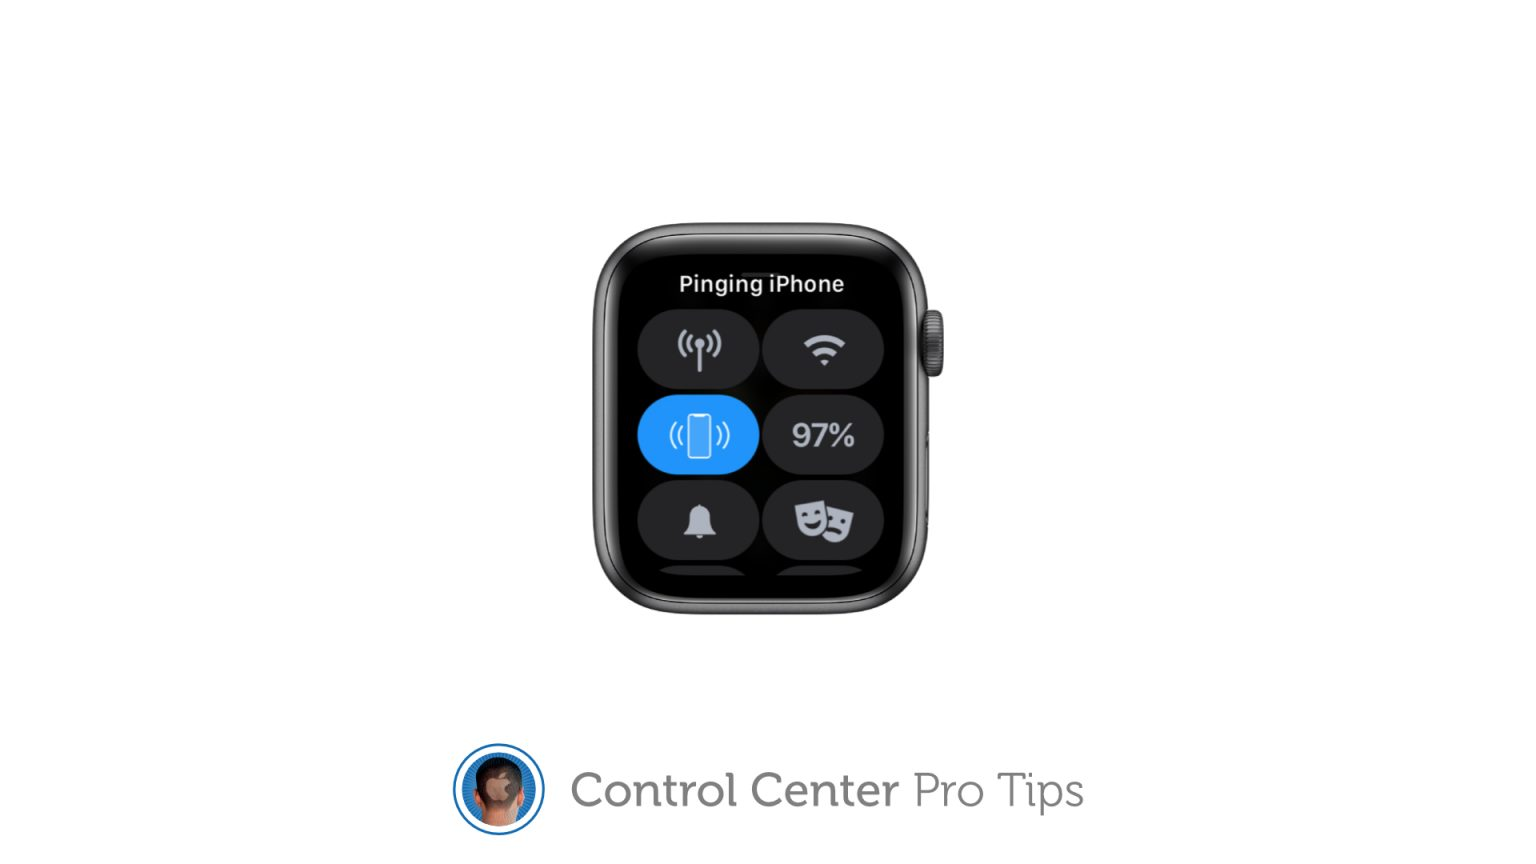 Ping a lost iPhone using Control Center on Apple Watch